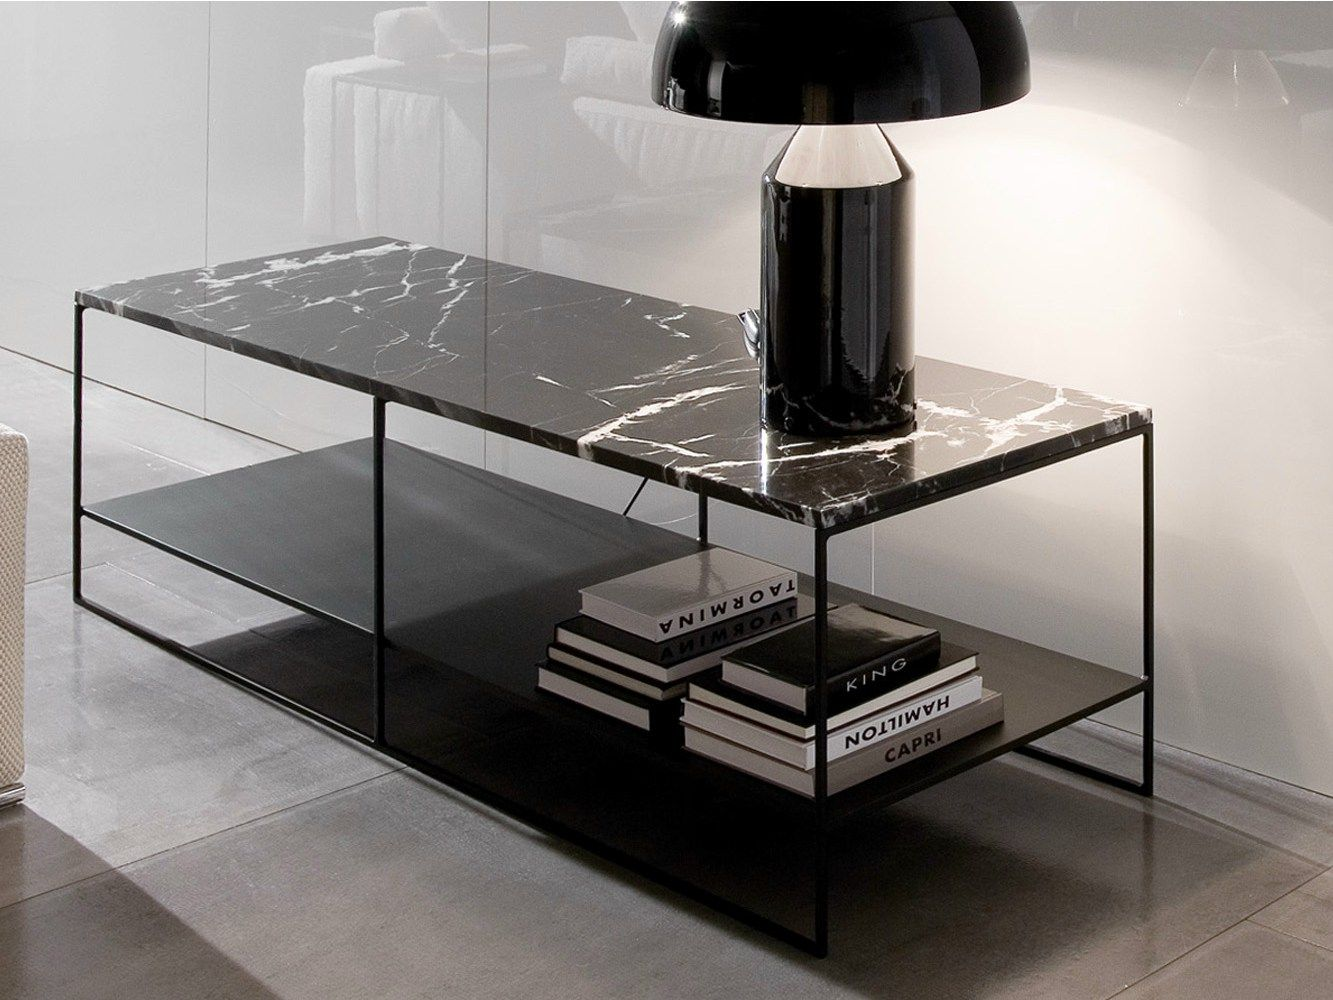 Couchtisch Brooklyn Picture Minotti Bresson Table Photo - Google Search | Table En